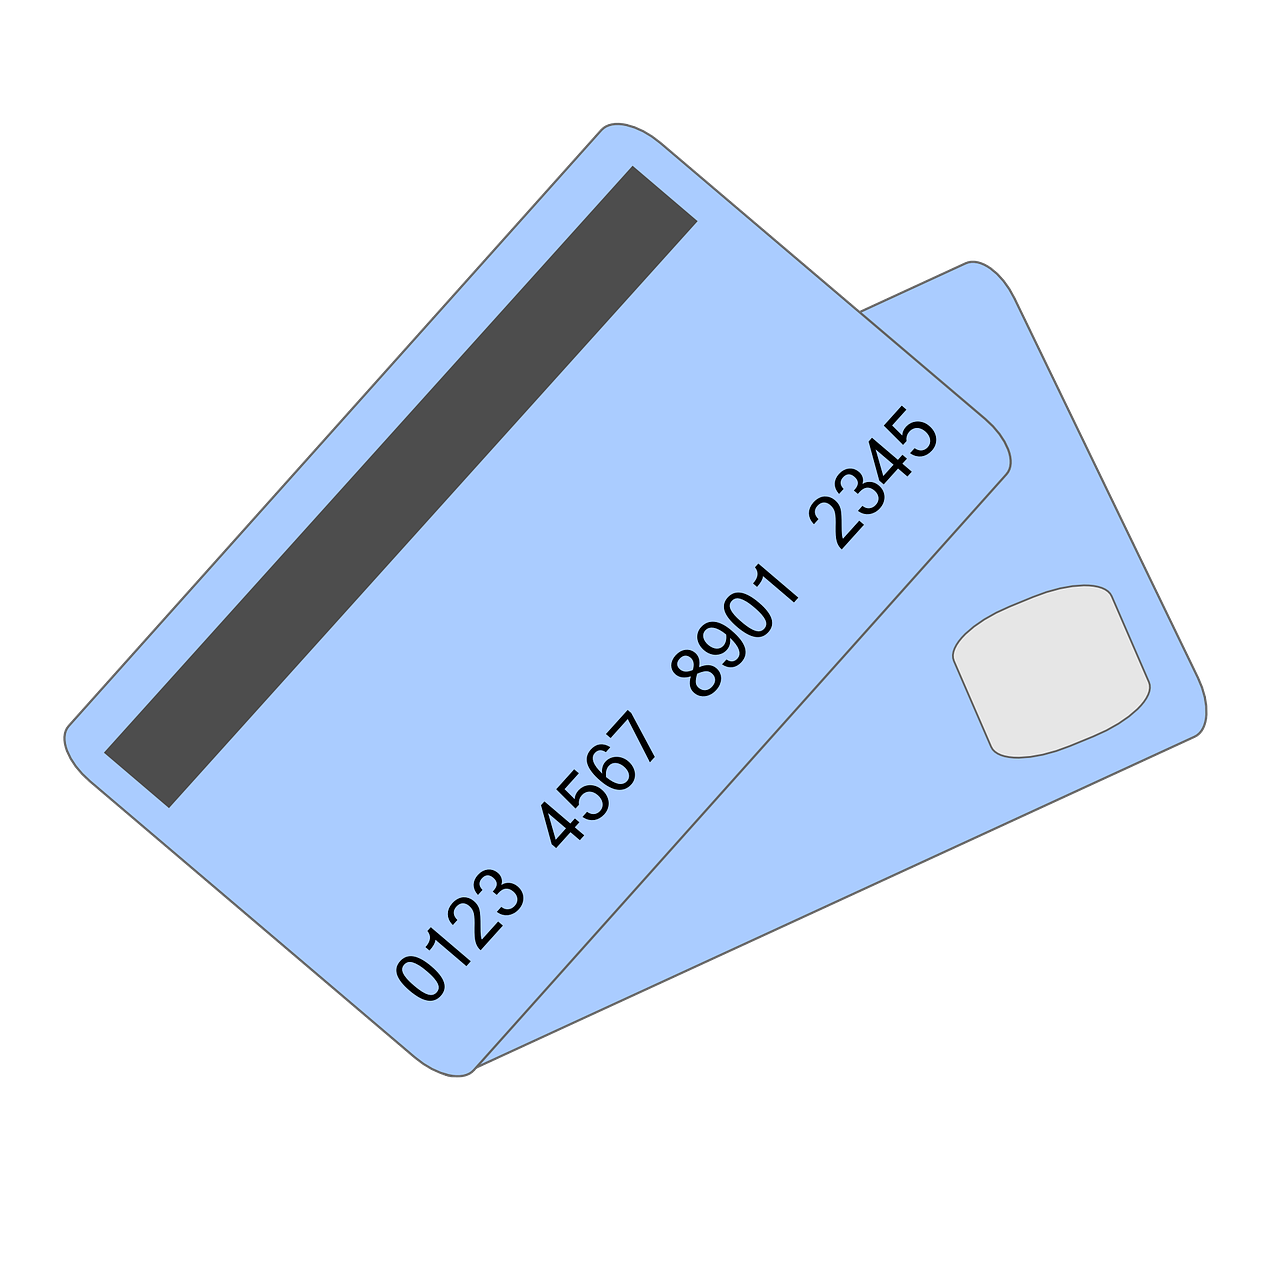 Debit Card Use in Steady Decline: Down to a New Low of What Percent